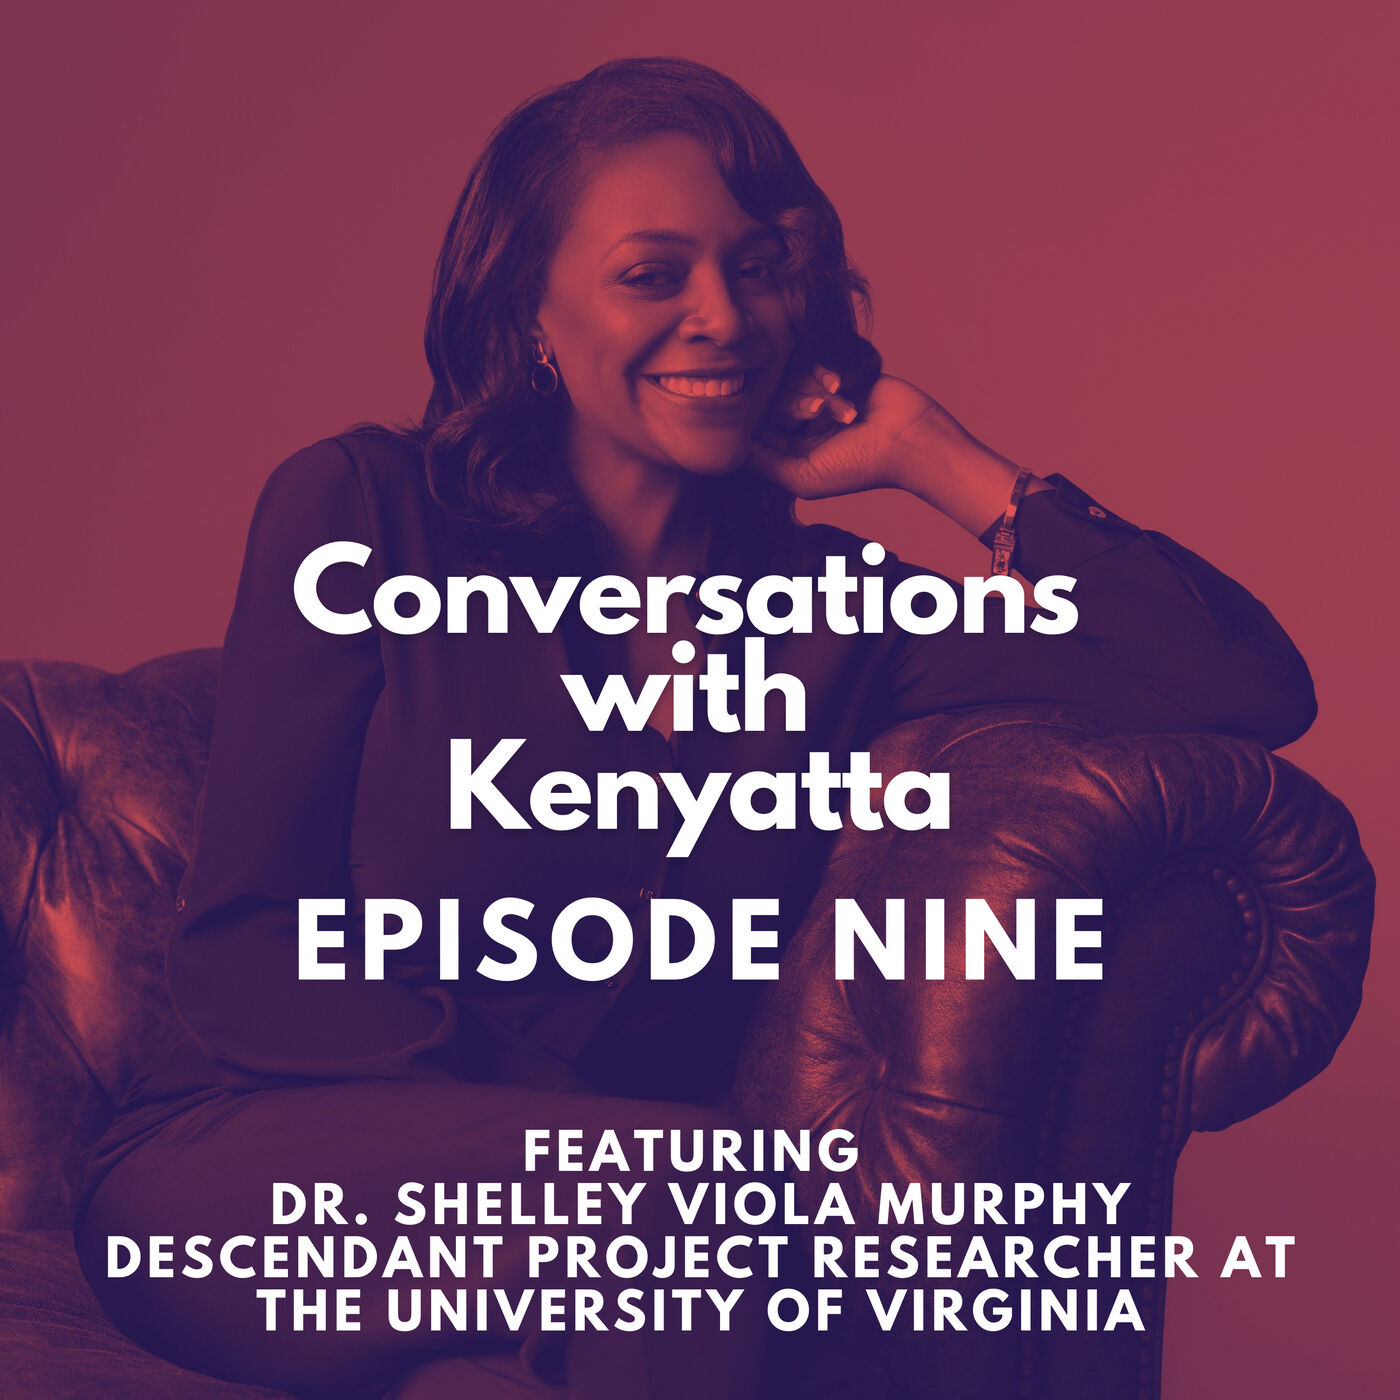 A Conversation with Dr. Shelley Viola Murphy, Descendant Project Researcher at the University of Virginia